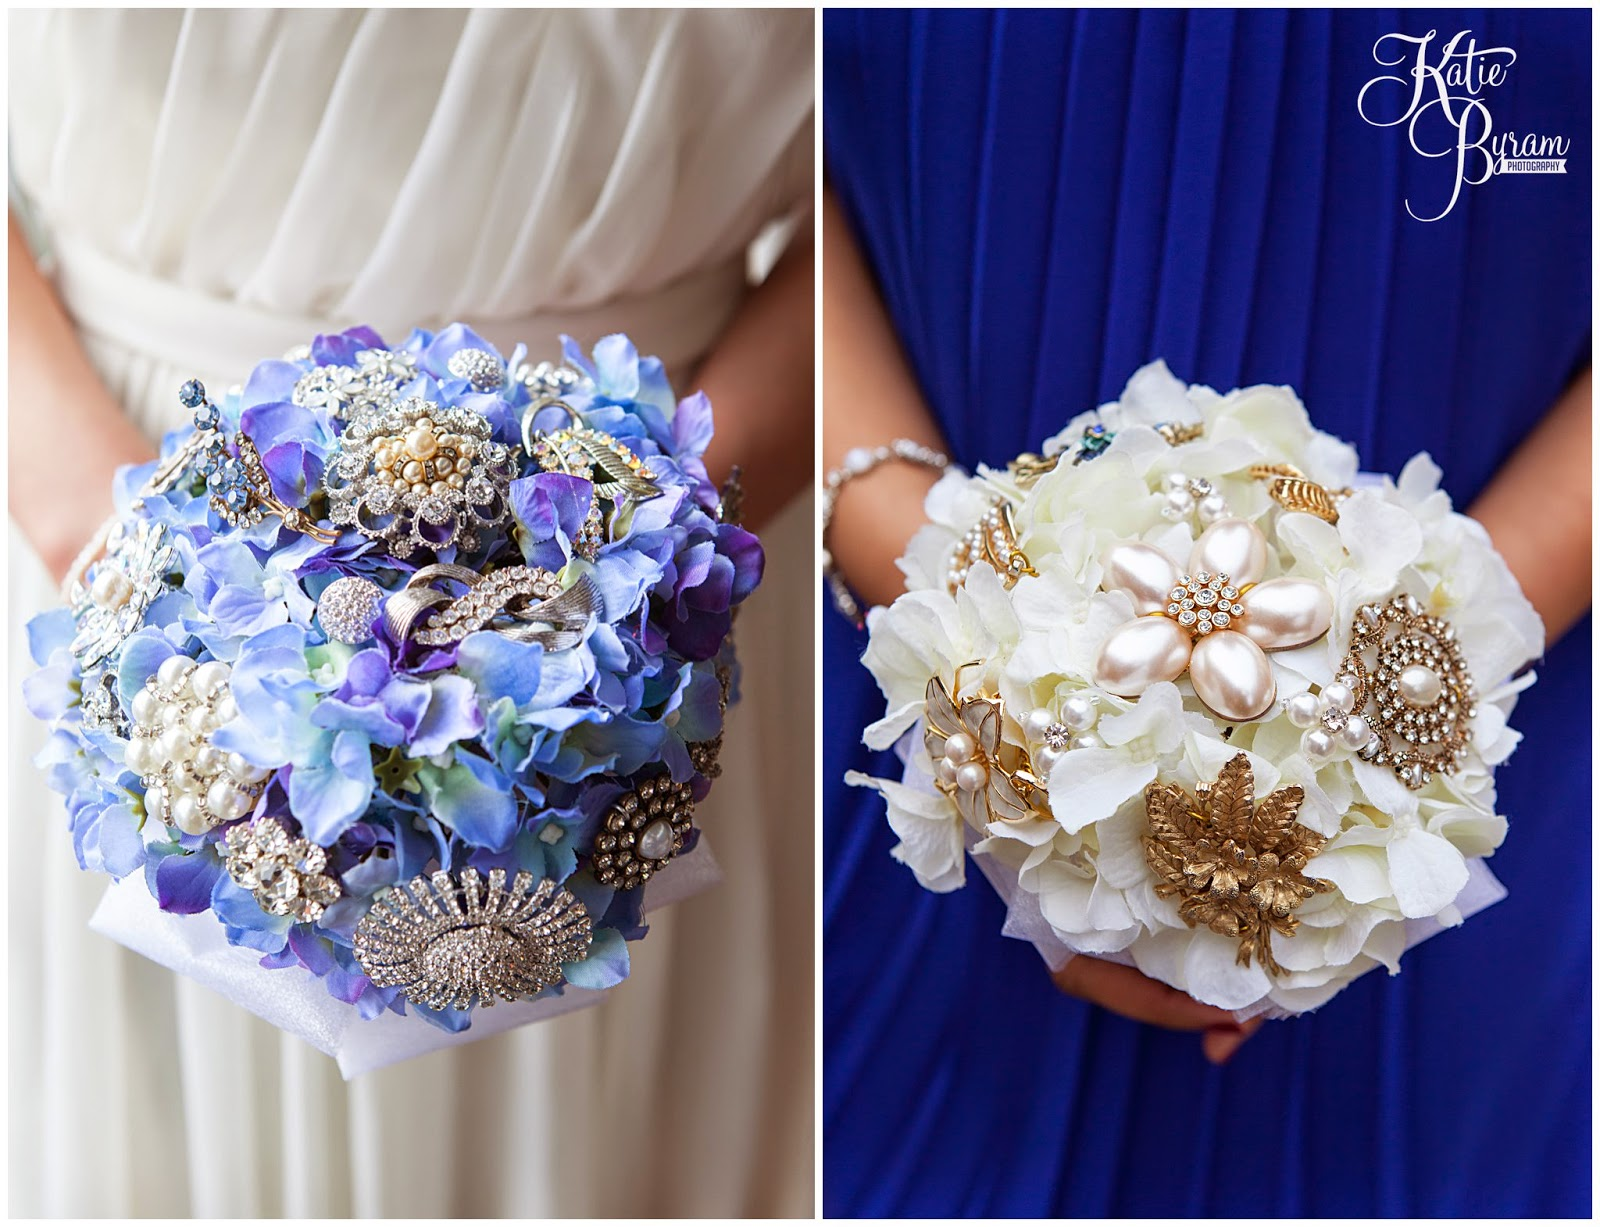 broach bouquet, button bouquet, how to make a broach bouquet, hotel du vin newcastle, hotel du vin wedding, hotel du vin wedding photographs, hotel du vin newcastle wedding photographs, vintage wedding, small wedding, katie byram photography, newcastle wedding venue, city wedding venue